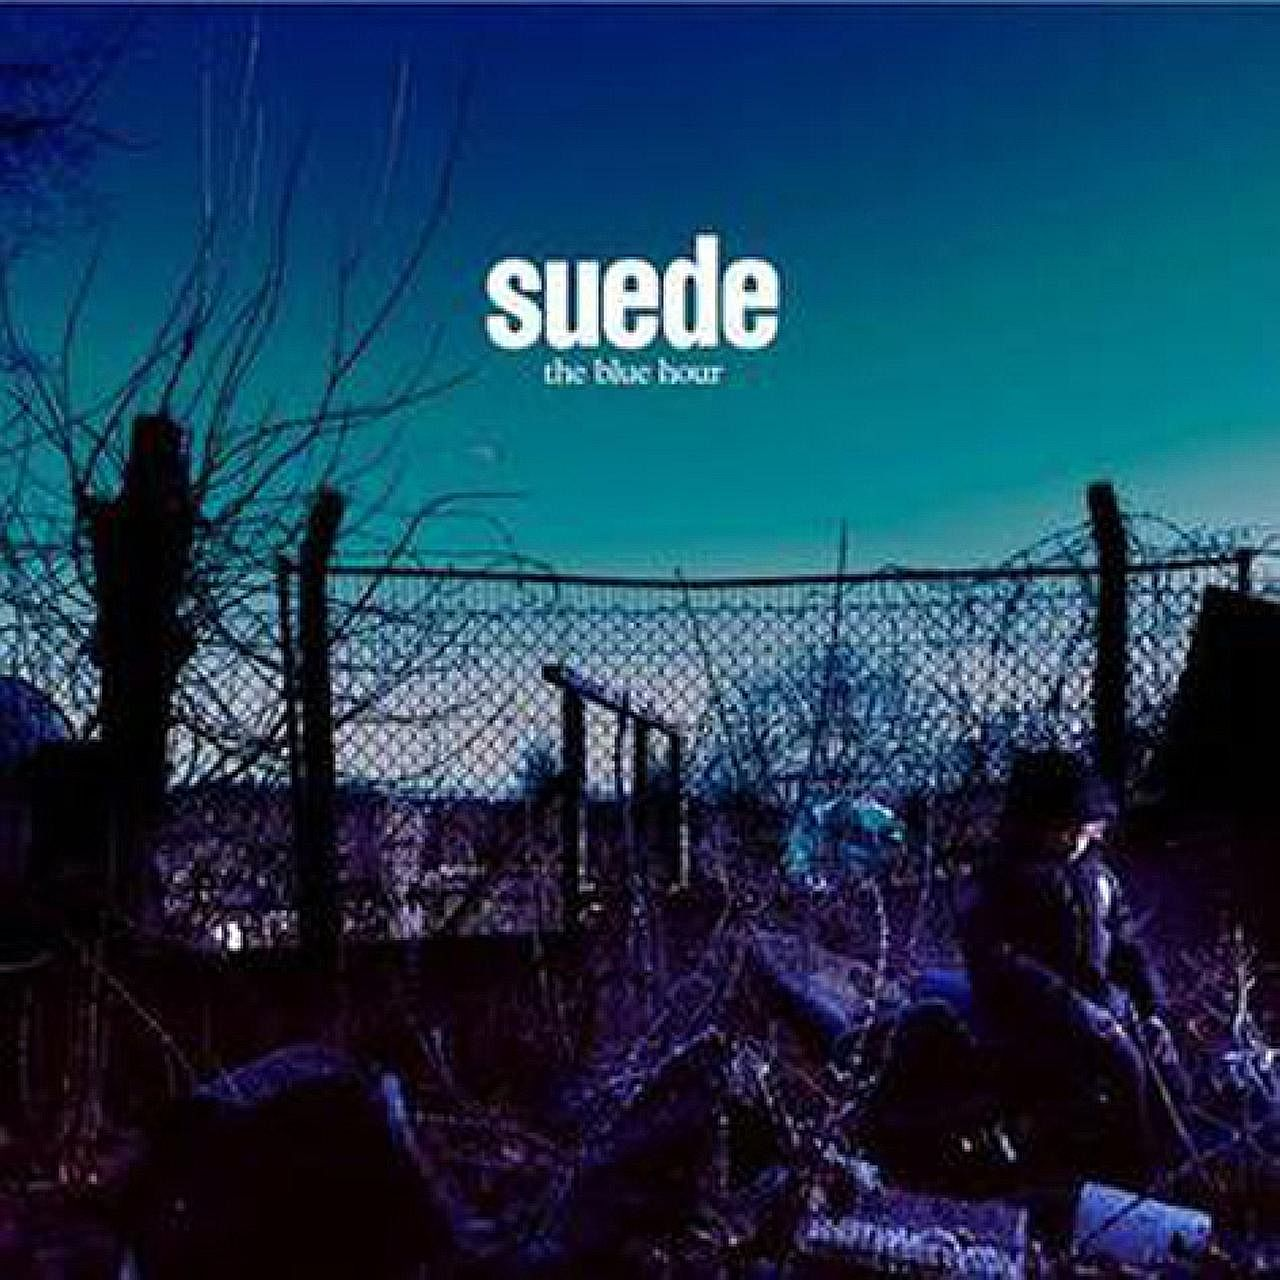 The regrouped Suede deliver a grand operatic album in The Blue Hour.